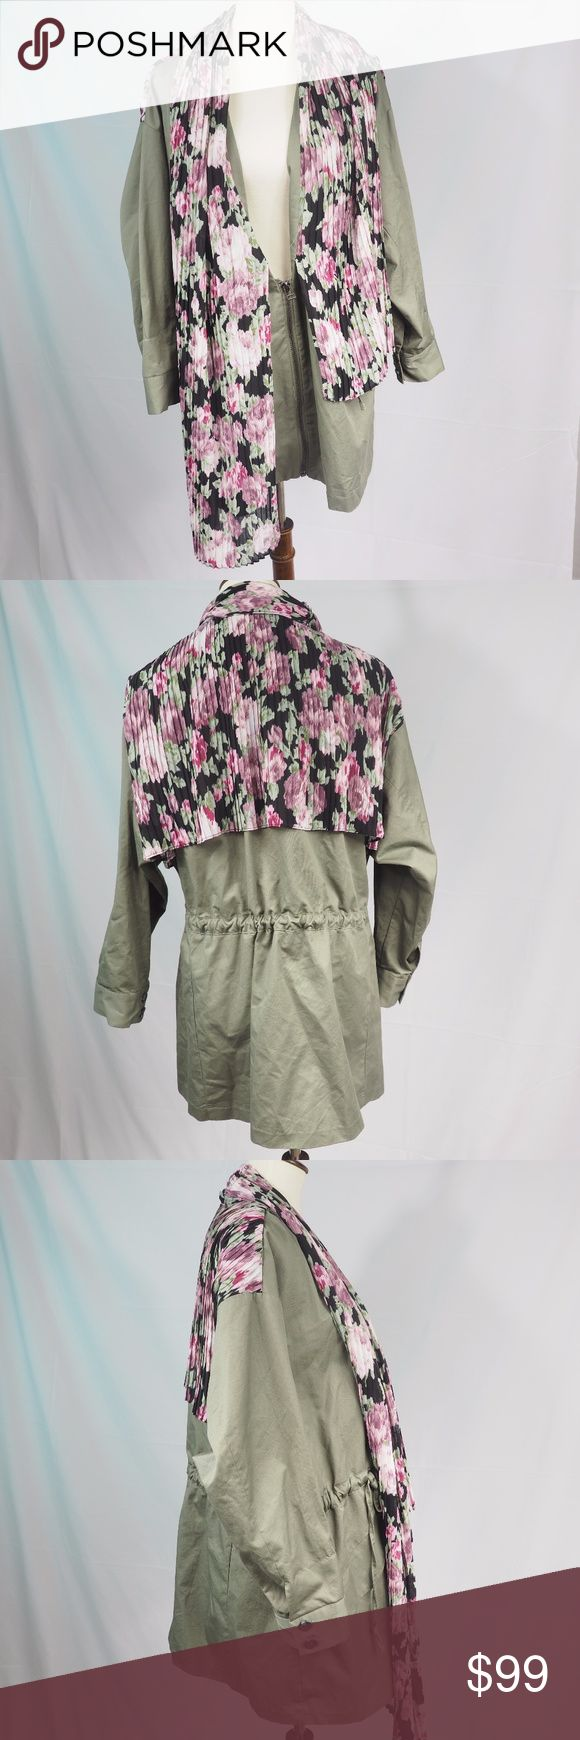 """TOV Holy Army Green Coat With Floral Scarf Size 8 Hello! Up for sale is this TOV Jacket With Connected Scarf in size 40 or US 8-10 in nearly new pre-loved condition. Please view all photos and measurements to ensure your perfect fit before purchase. Please let me know if you have any questions! :)   - Appears to be an over sized fit - check measurements.   Measurements Shoulder-Shoulder - 22"""" Top-Bottom - 27.5"""" Underarm-Underarm - 25"""" Sleeve- 19"""" TOV Holy Jackets & Coats Trench Coats"""